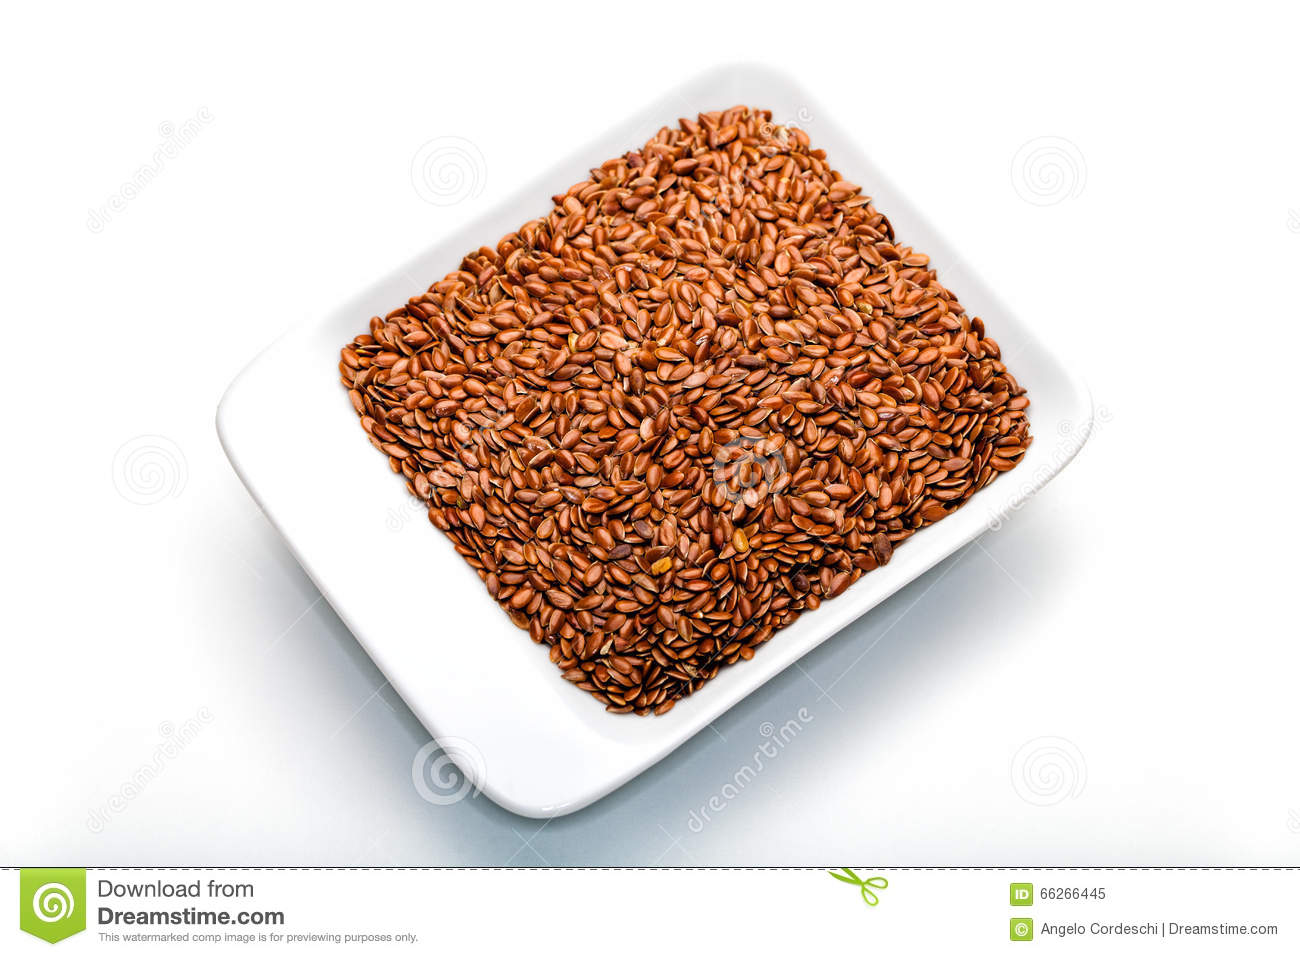 Ground flaxseed calories